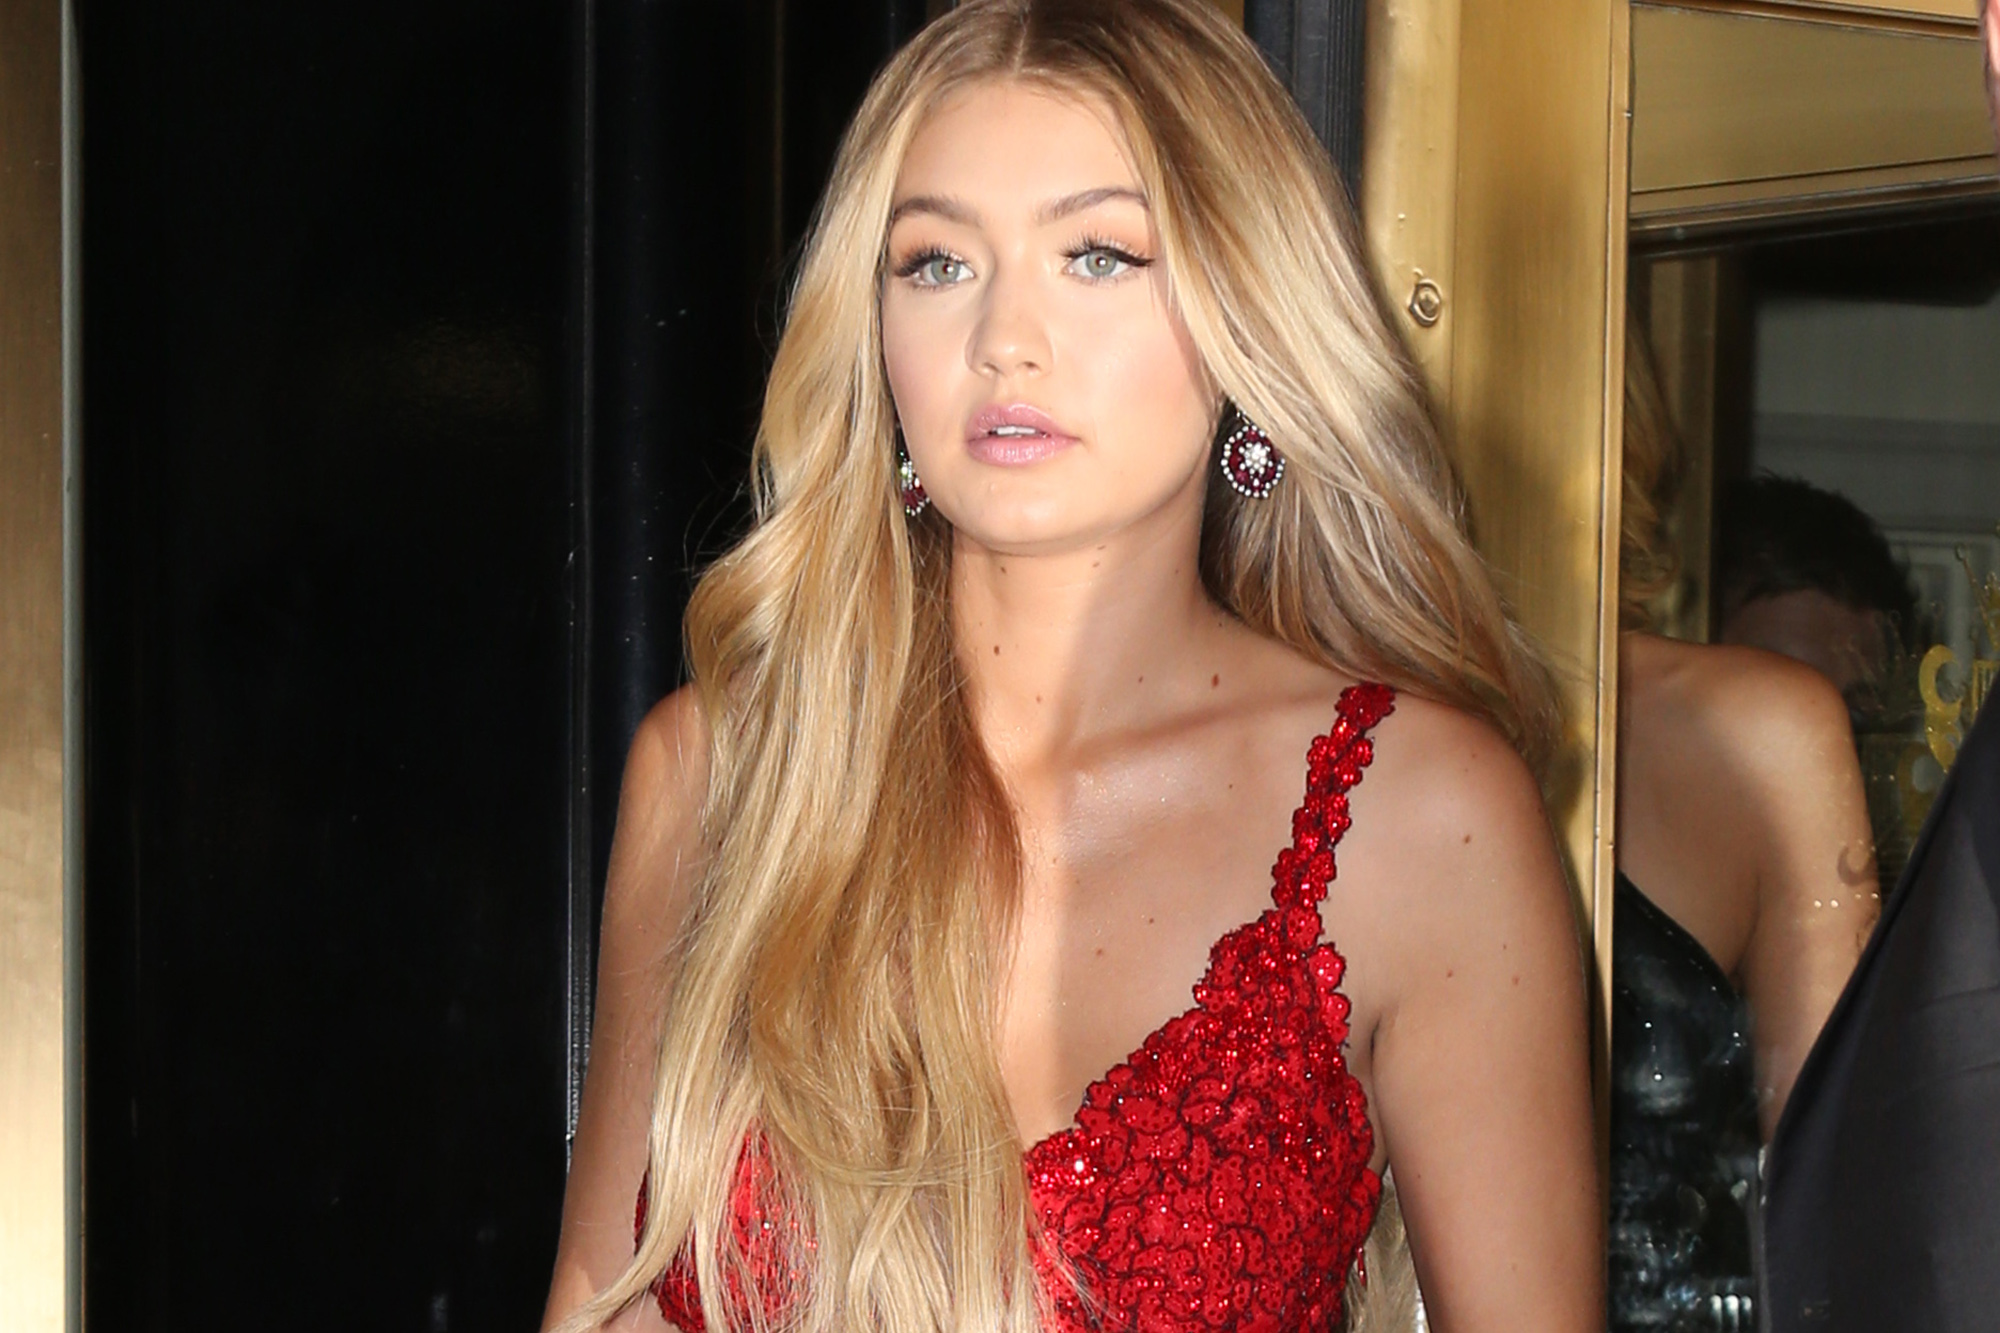 Celebrities head to the Met Gala in New York City. Pictured: Gigi Hadid Ref: SPL1016859 040515 Picture by: Splash News Splash News and Pictures Los Angeles: 310-821-2666 New York: 212-619-2666 London: 870-934-2666 photodesk@splashnews.com